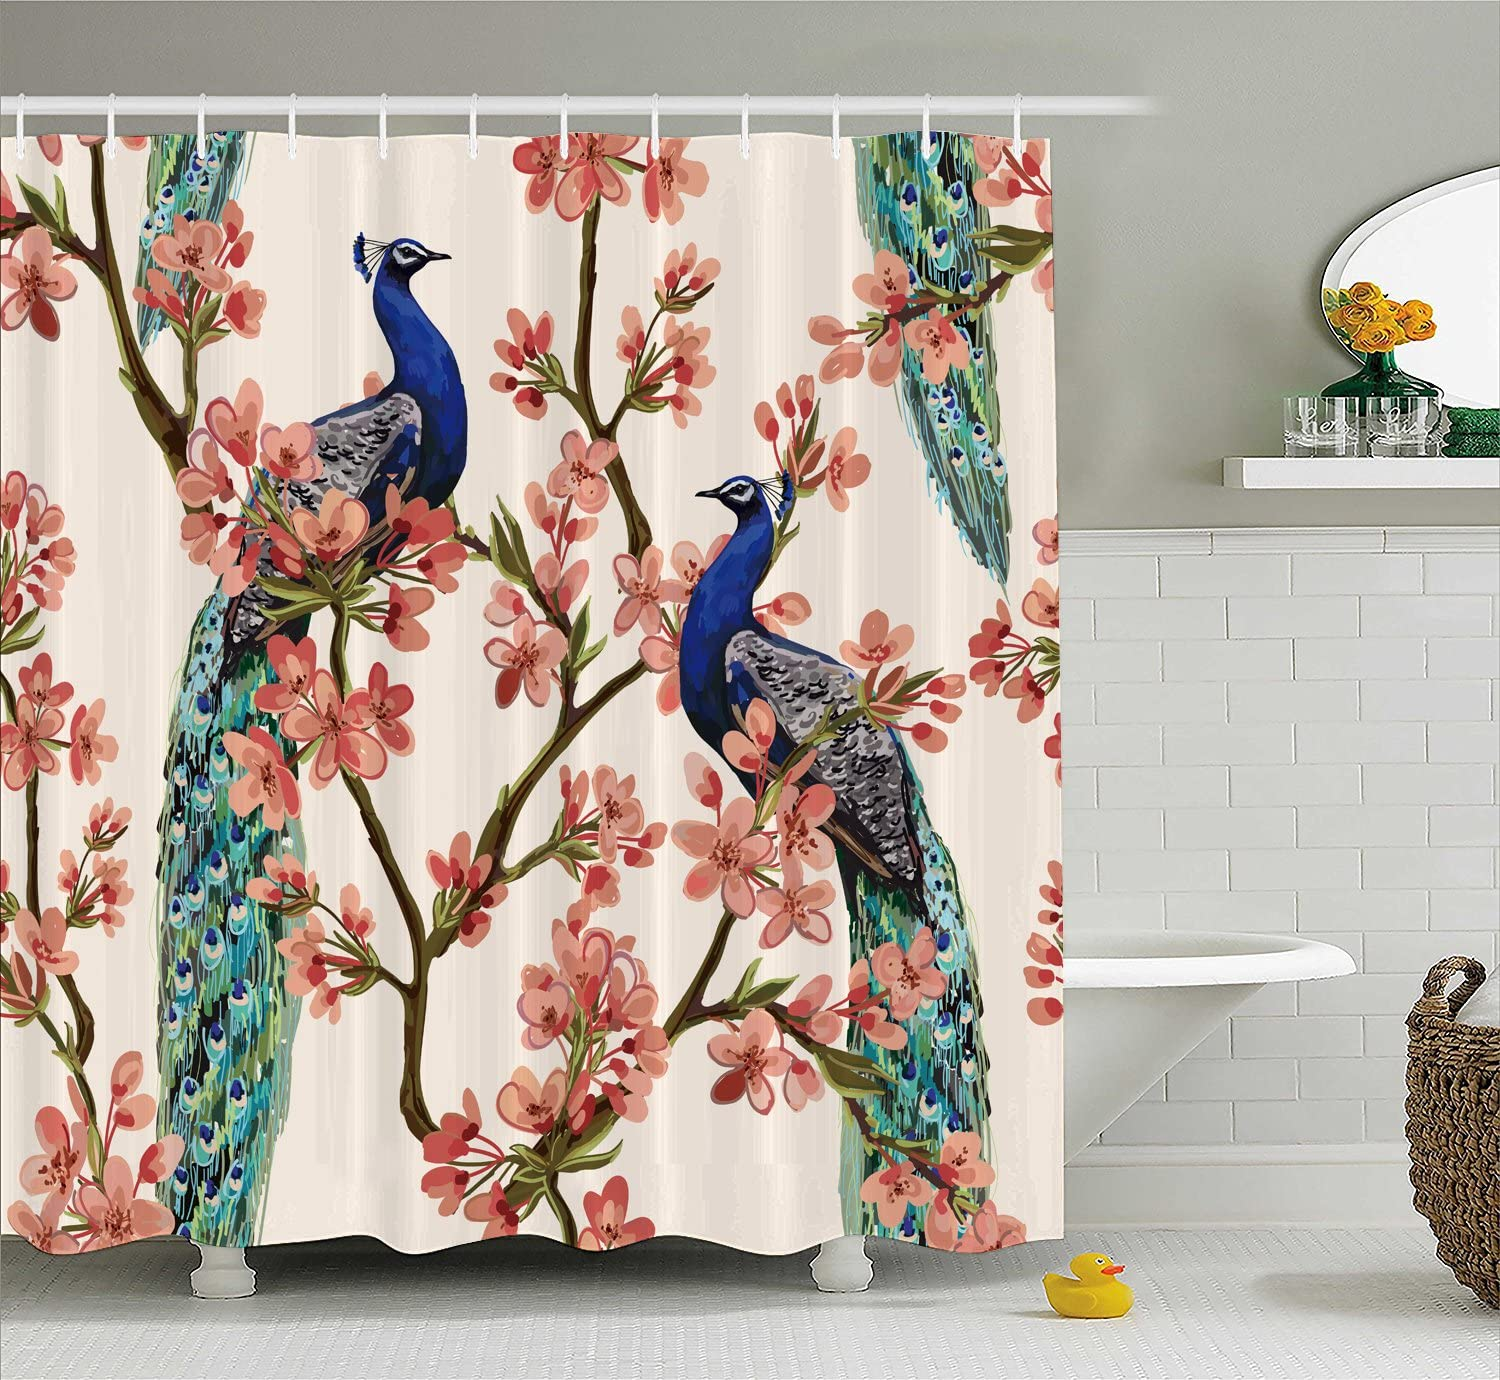 Manerly Shower Curtain with Peacock Tropical Flowers Pattern,Polyester Fabric Waterproof Bath Curtains